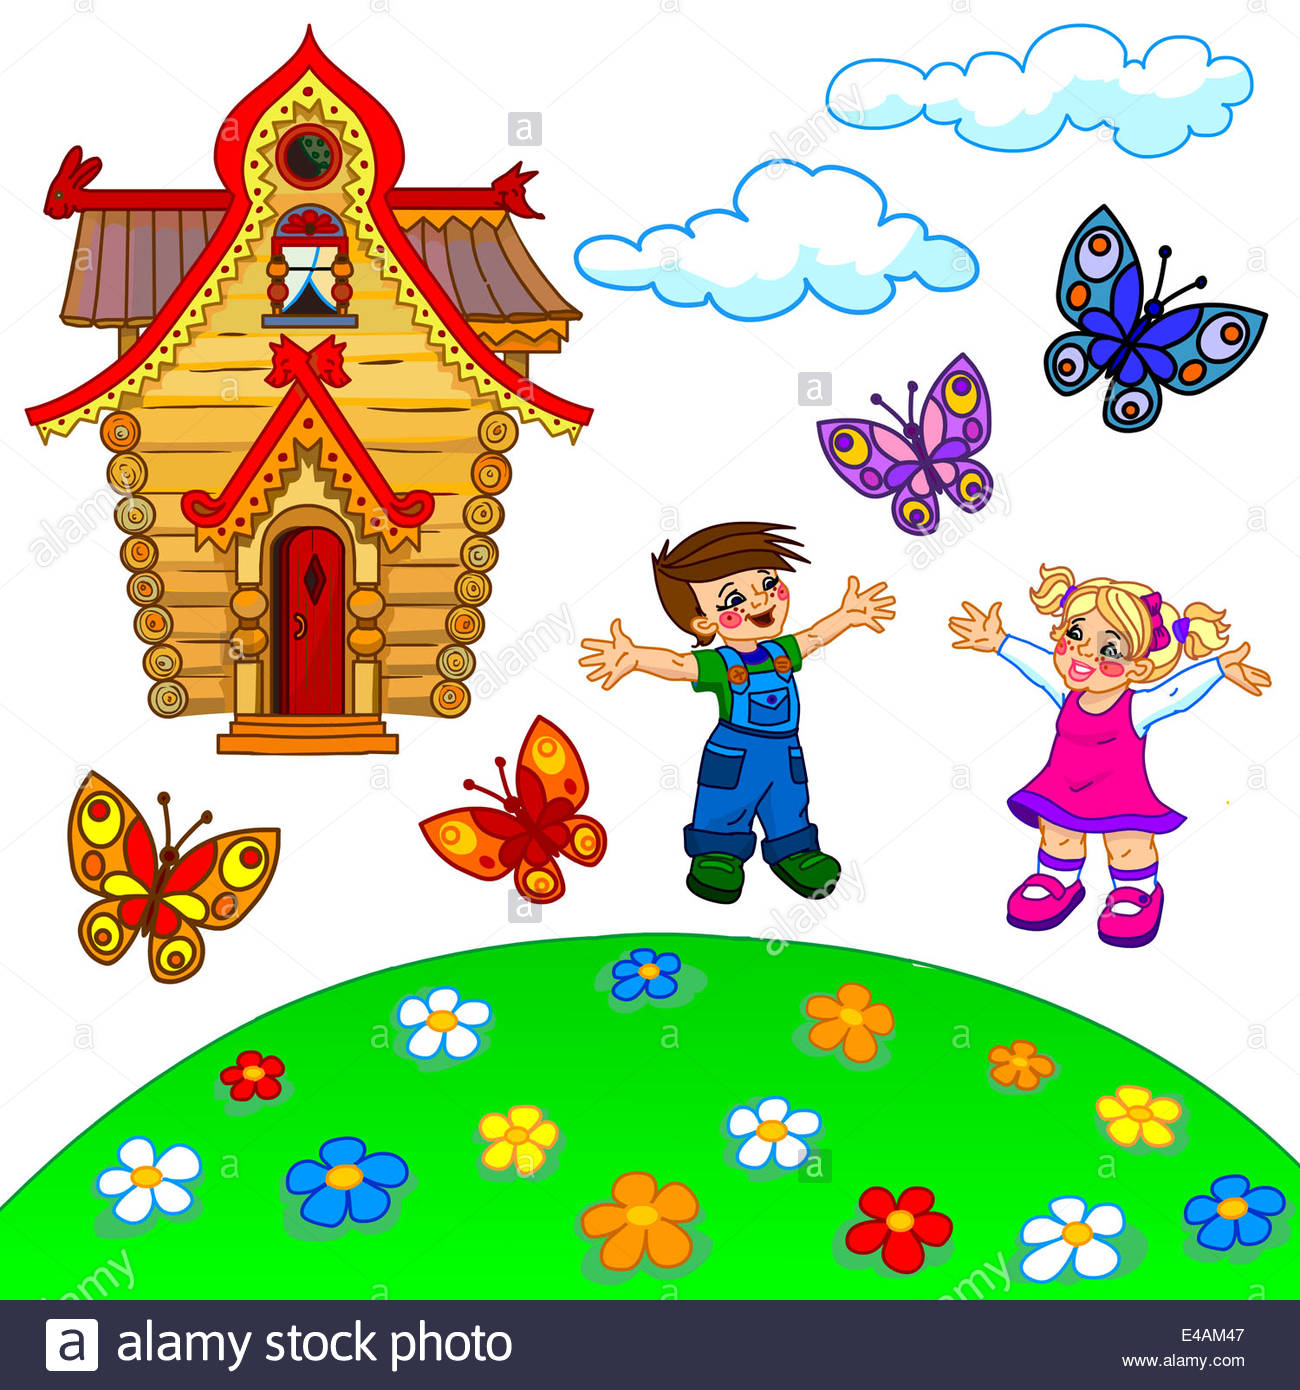 Illustration Of Cartoon Lawn, Two Happy Kids, House, Clouds And.